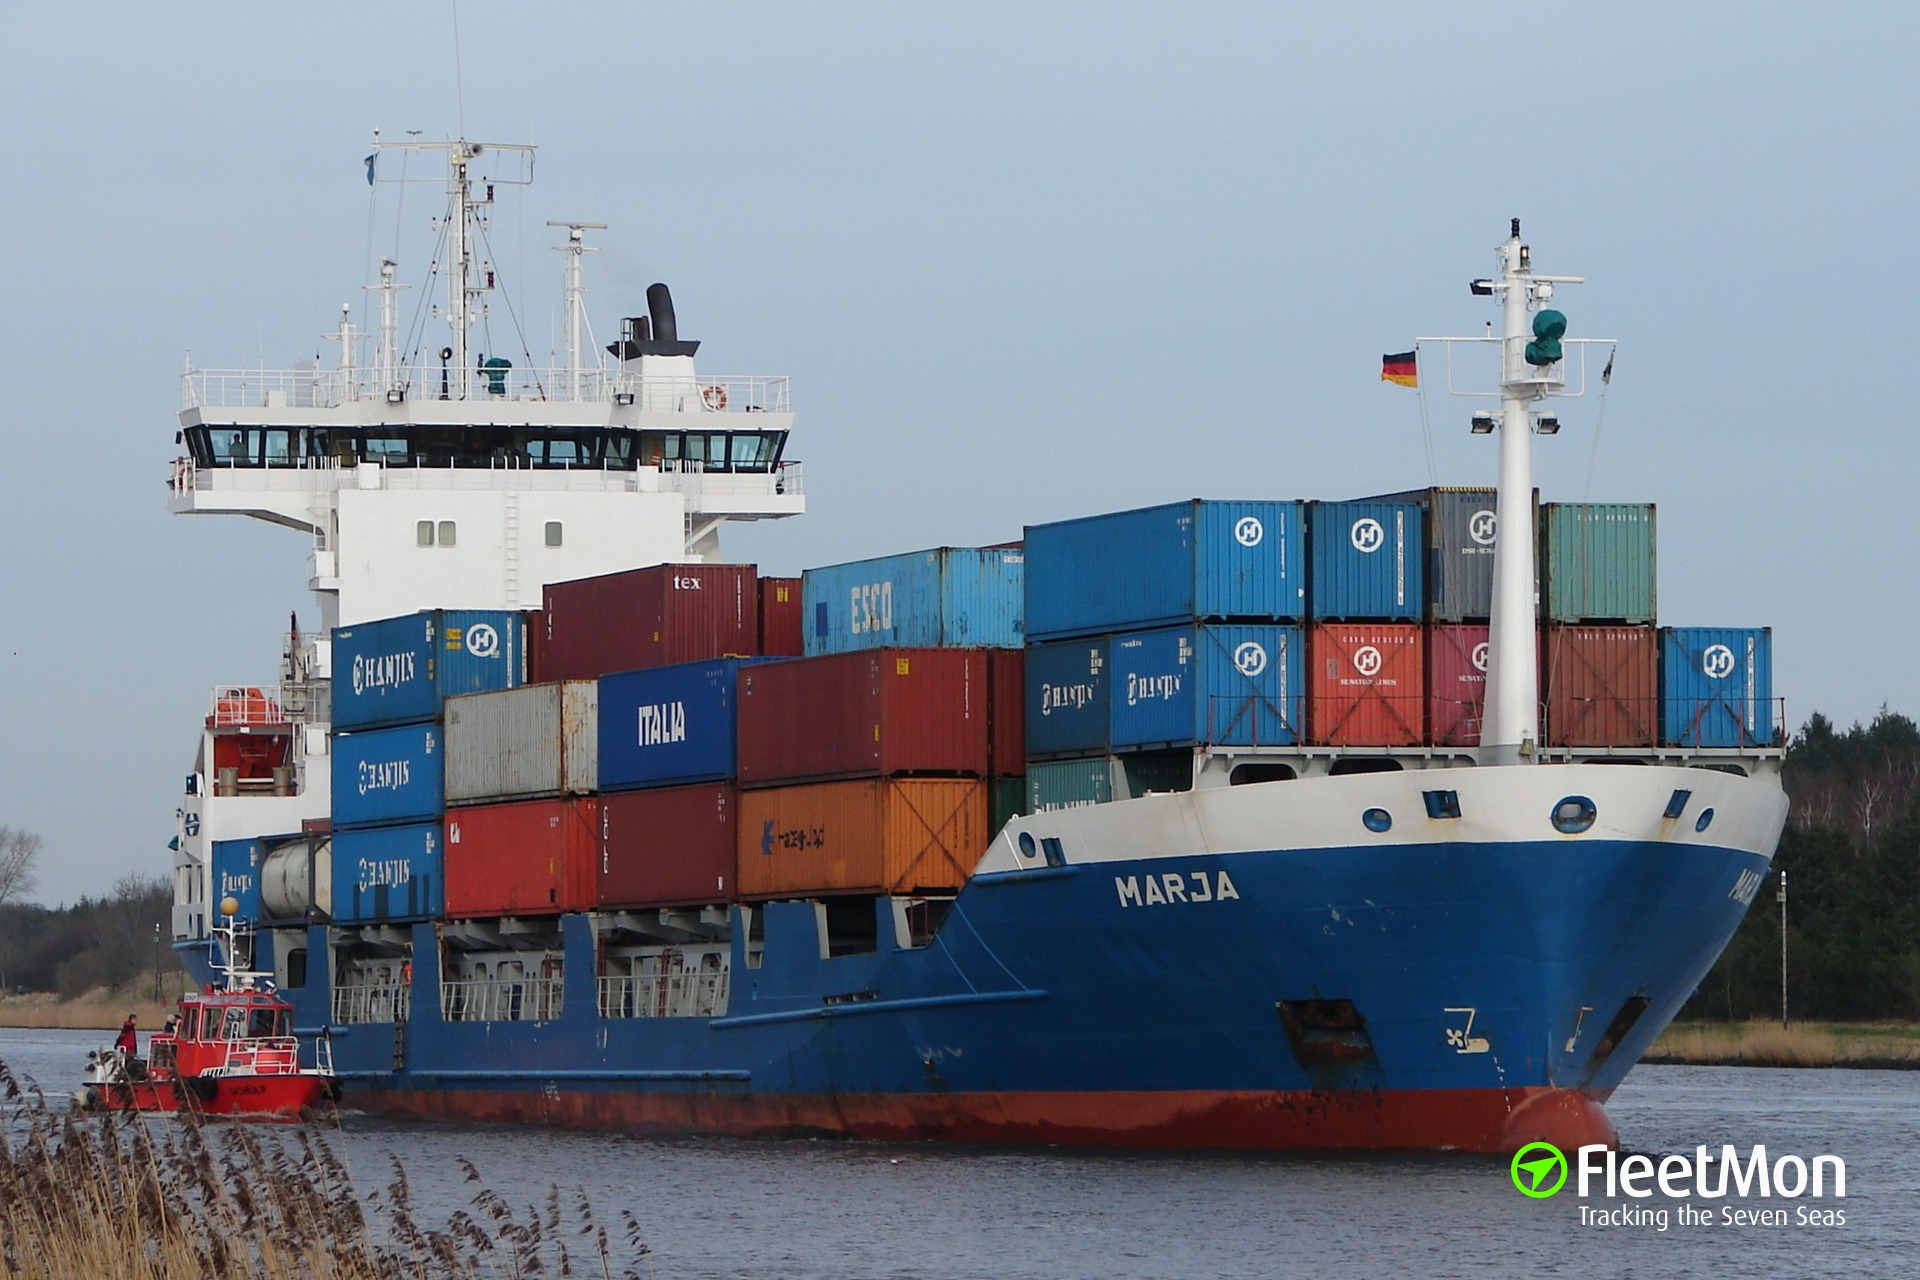 Disabled Dutch container ship towed to Rotterdam | MARJA - FleetMon